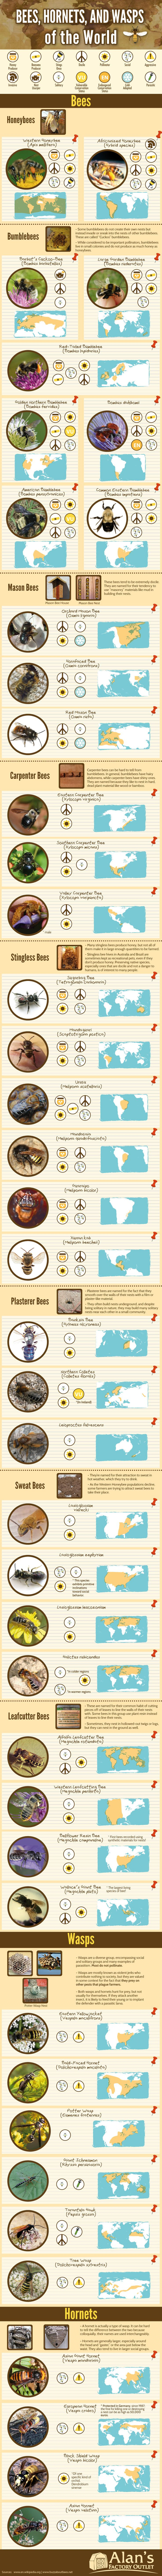 You might already know that there are different types of bees out there, but which ones are important to our ecosystems, which ones are endangered, which ones make honey...